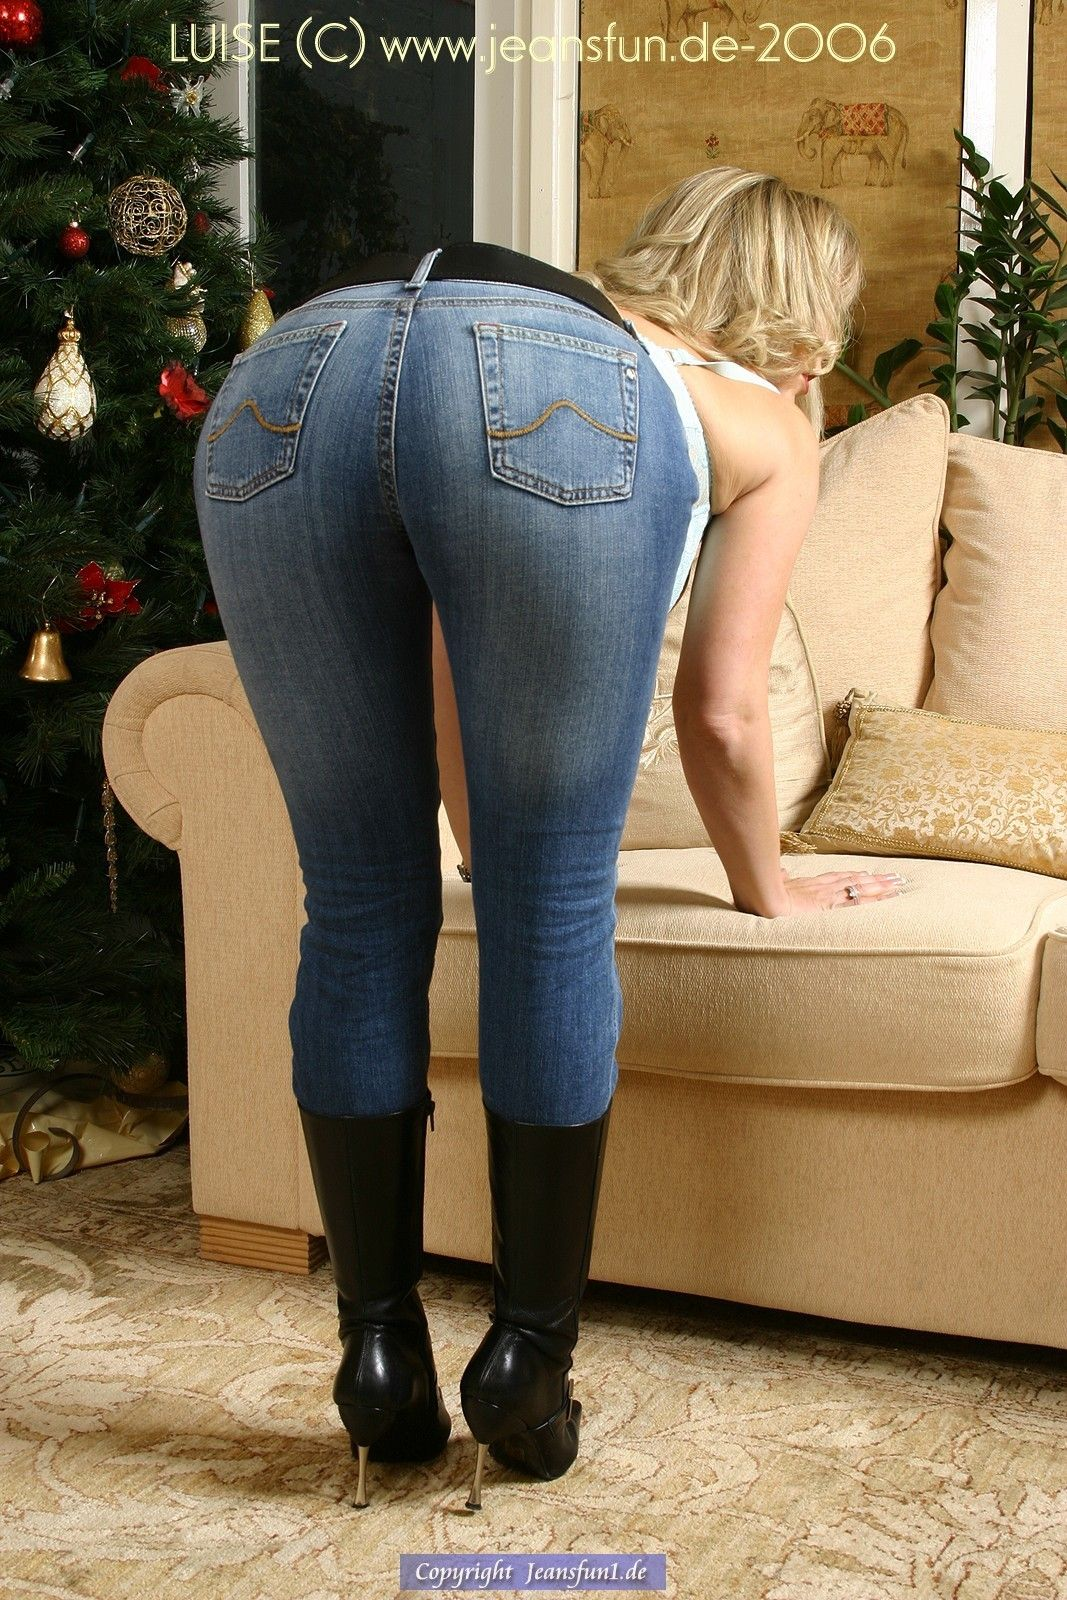 Mature wife bending over